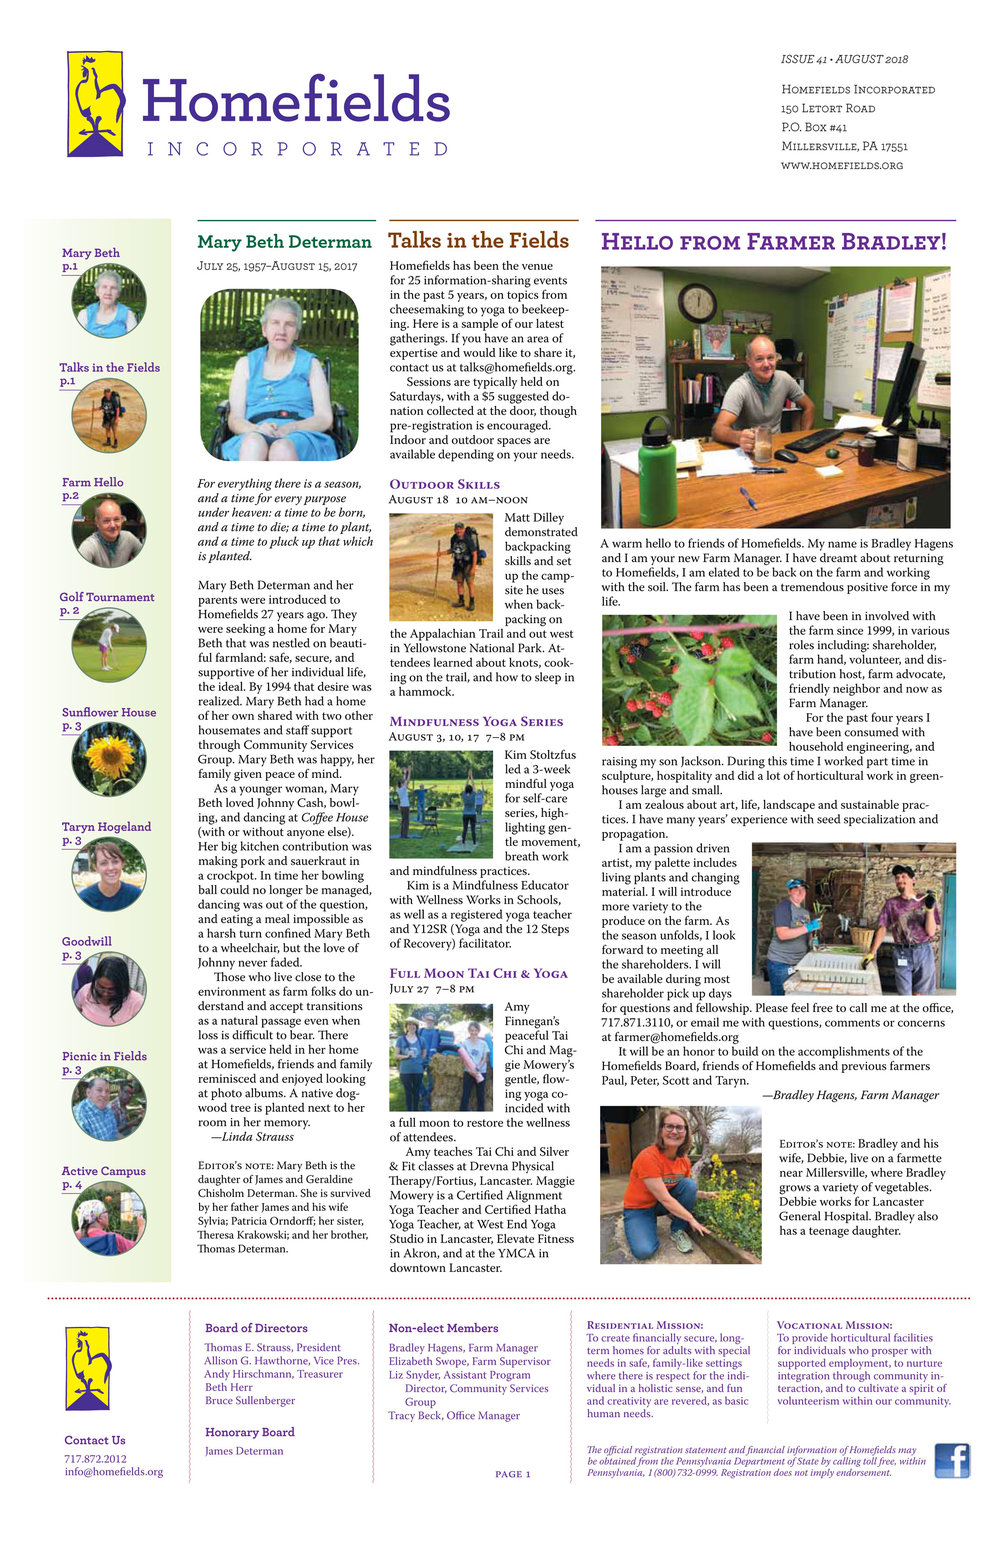 Our 41st newsletter is at the printer now. Click here to get a sneak peek.